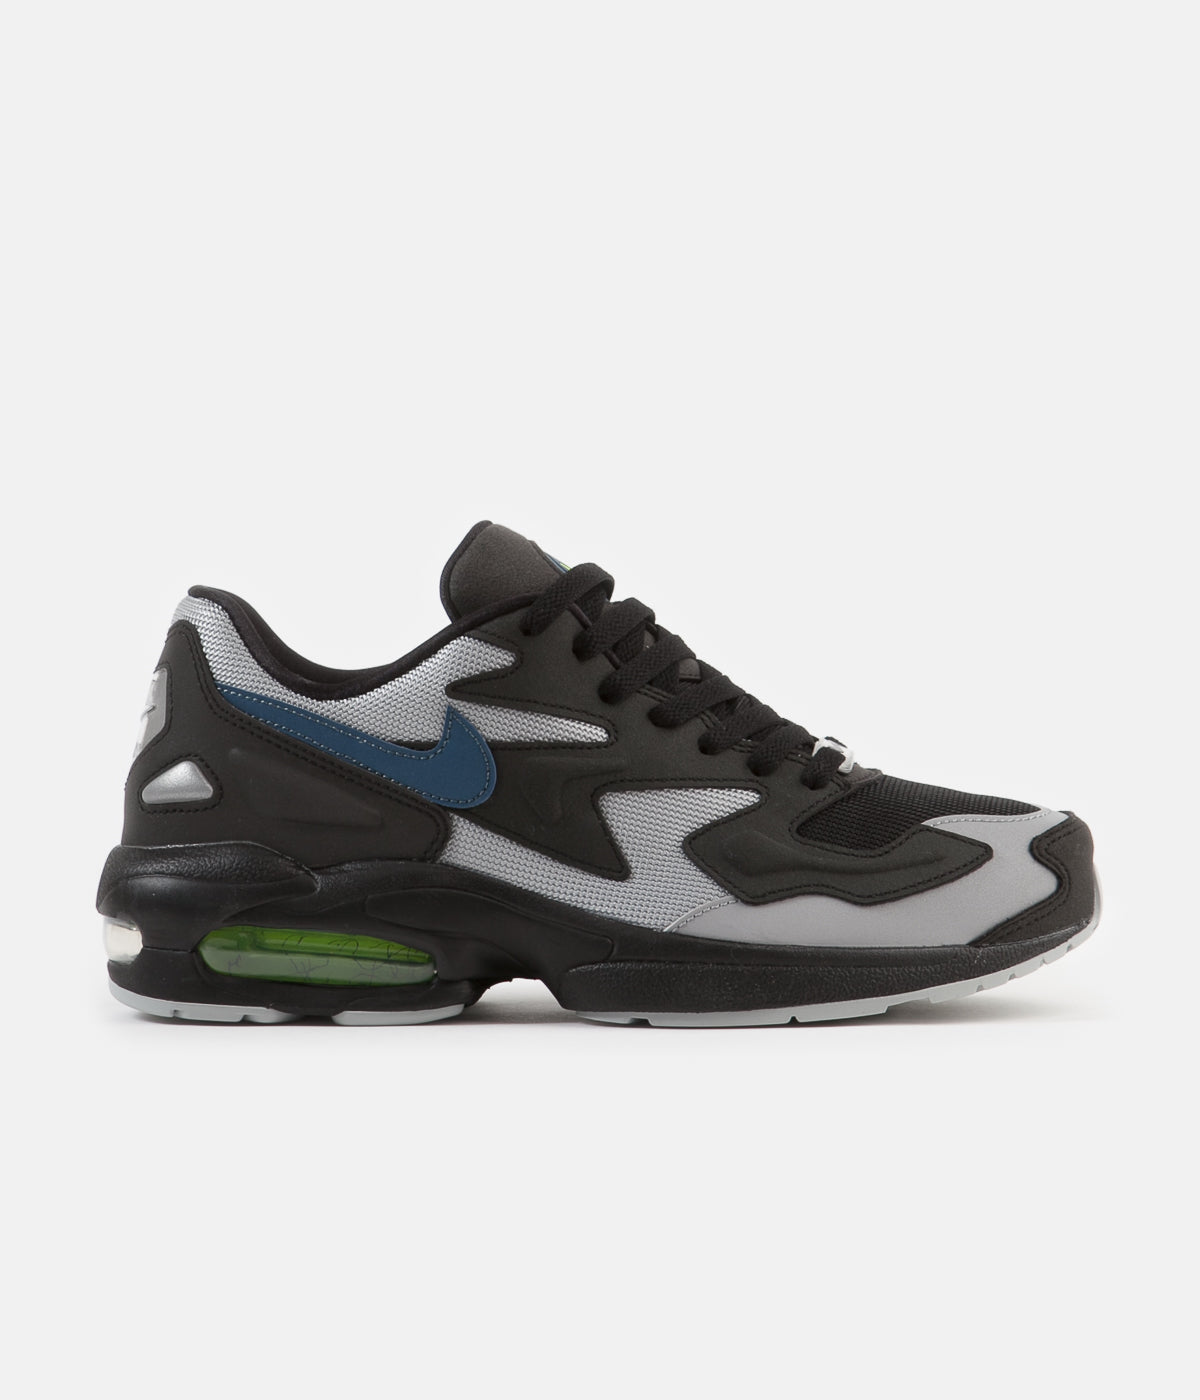 lowest price f33b4 2a0d2 ... Nike Air Max 2 Light Shoes - Black   Thunderstorm - Wolf Grey - Volt ...